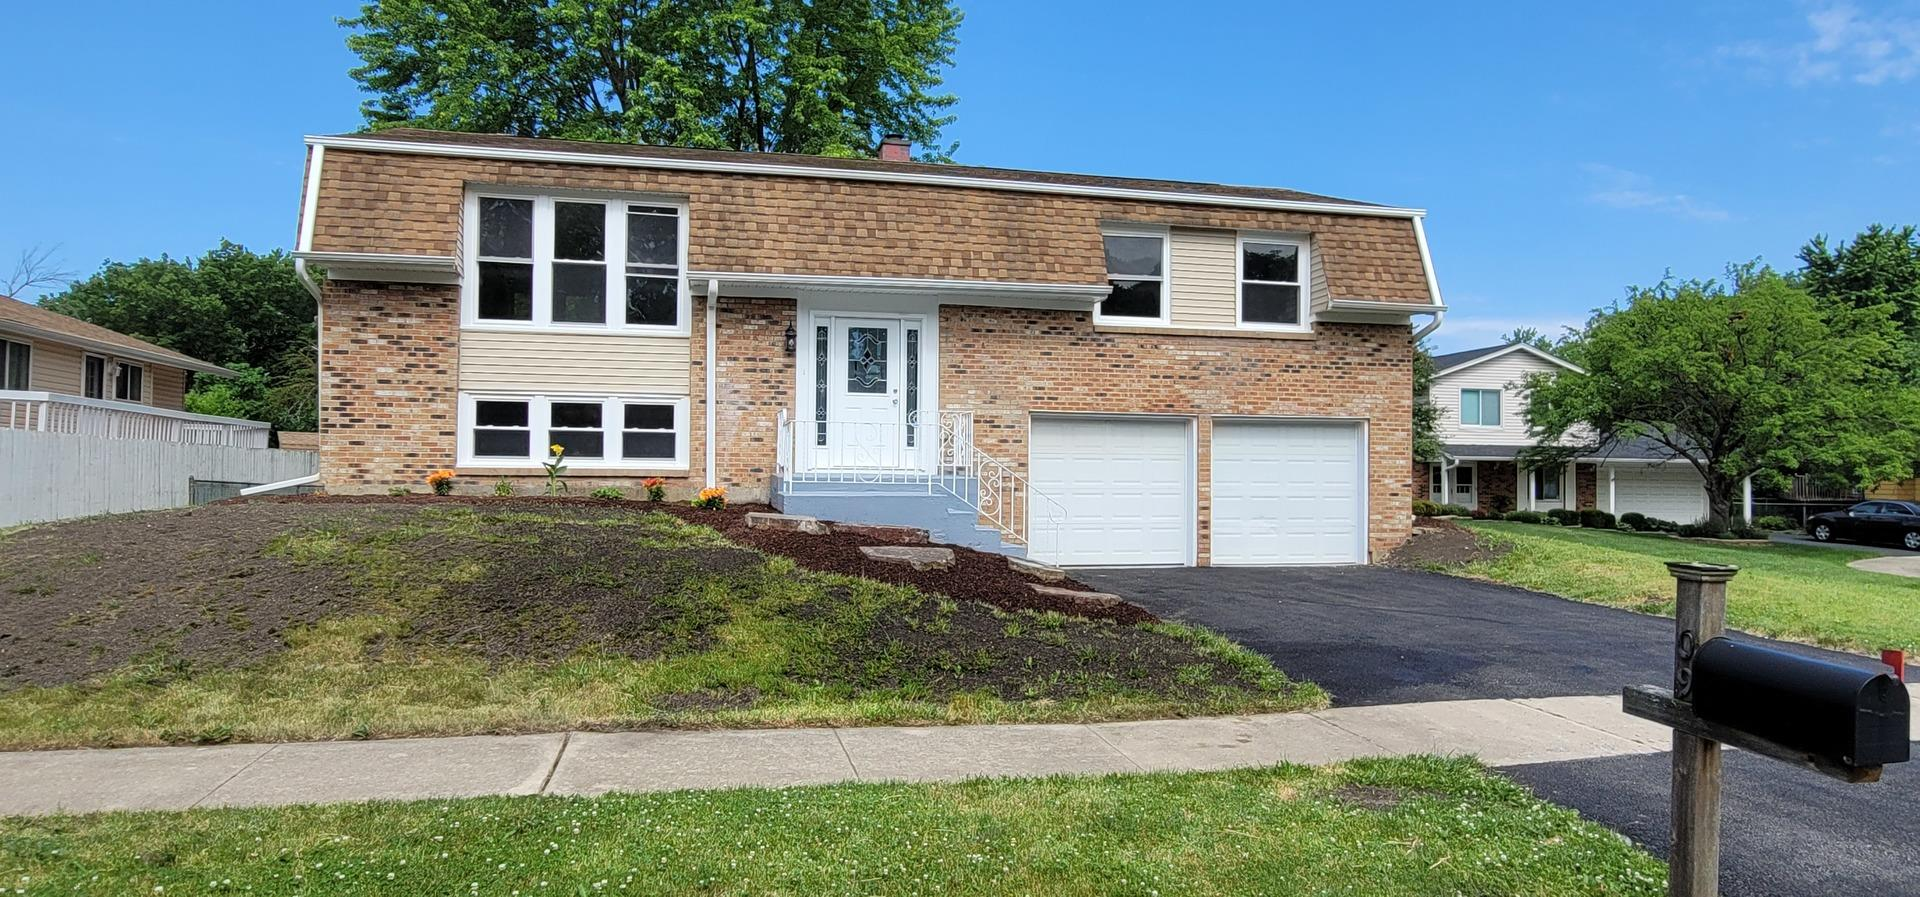 509 Whitby Court, Bolingbrook, IL 60440 - #: 11116604